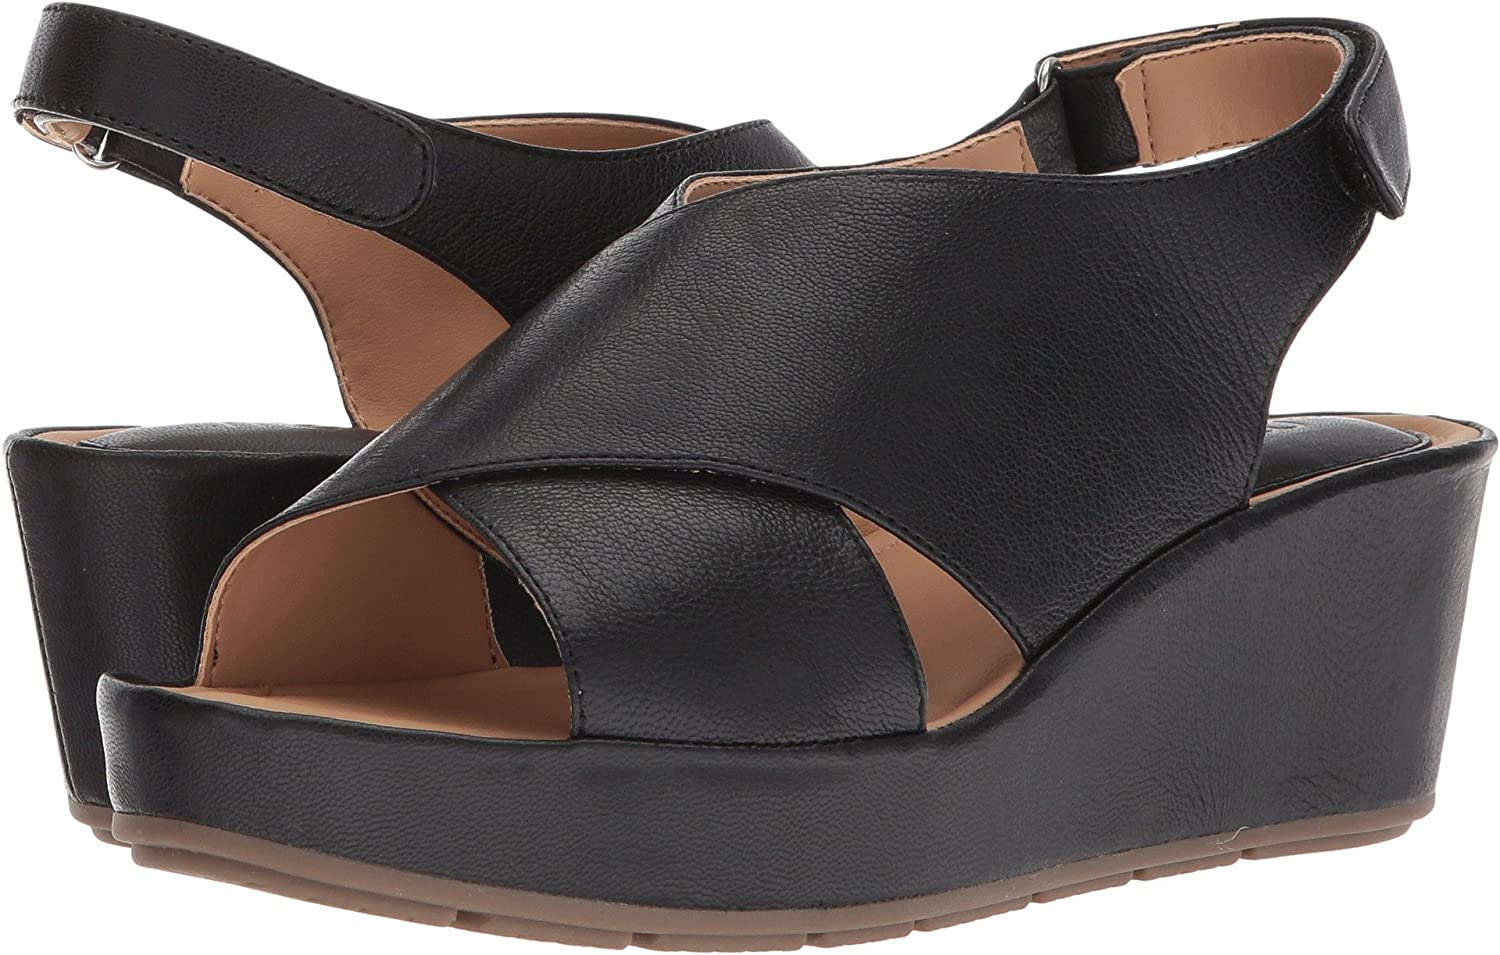 Me Too 9.5 Arena Women's Sandal B076QDT784 9.5 Too B(M) US|Black Goat Spore e0bc21